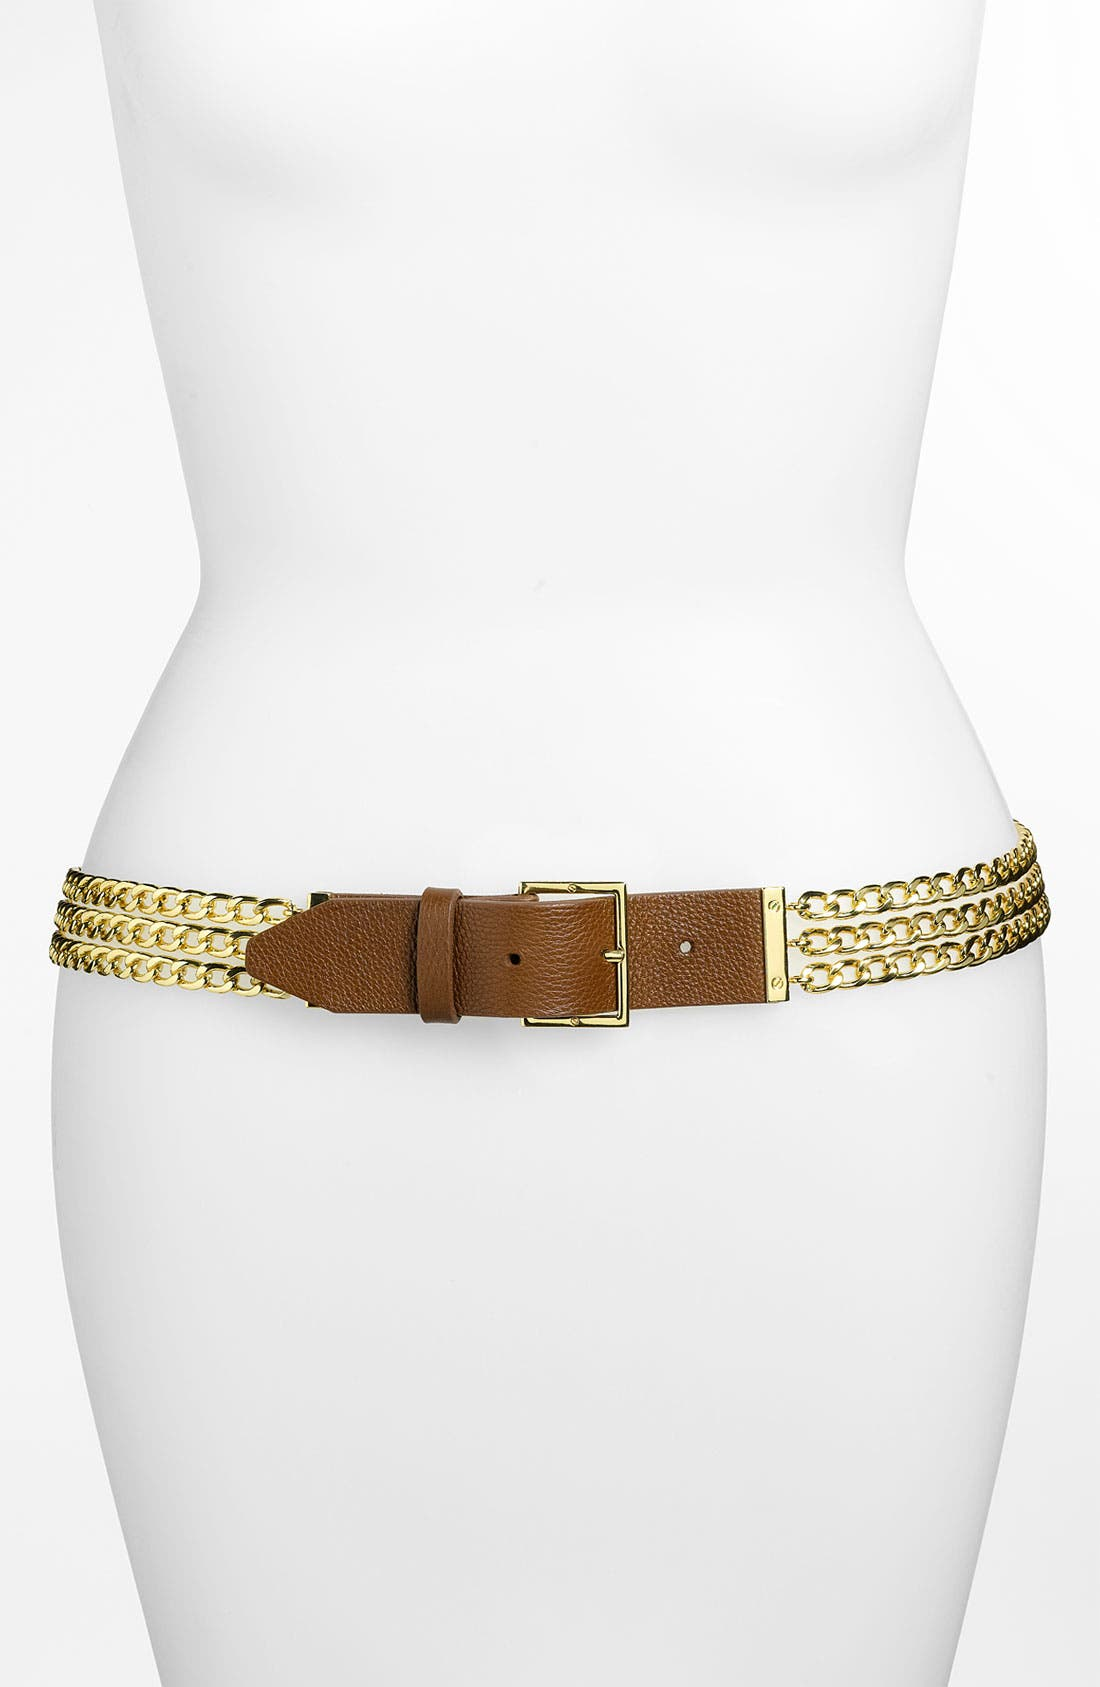 Alternate Image 1 Selected - Tory Burch Chain Belt